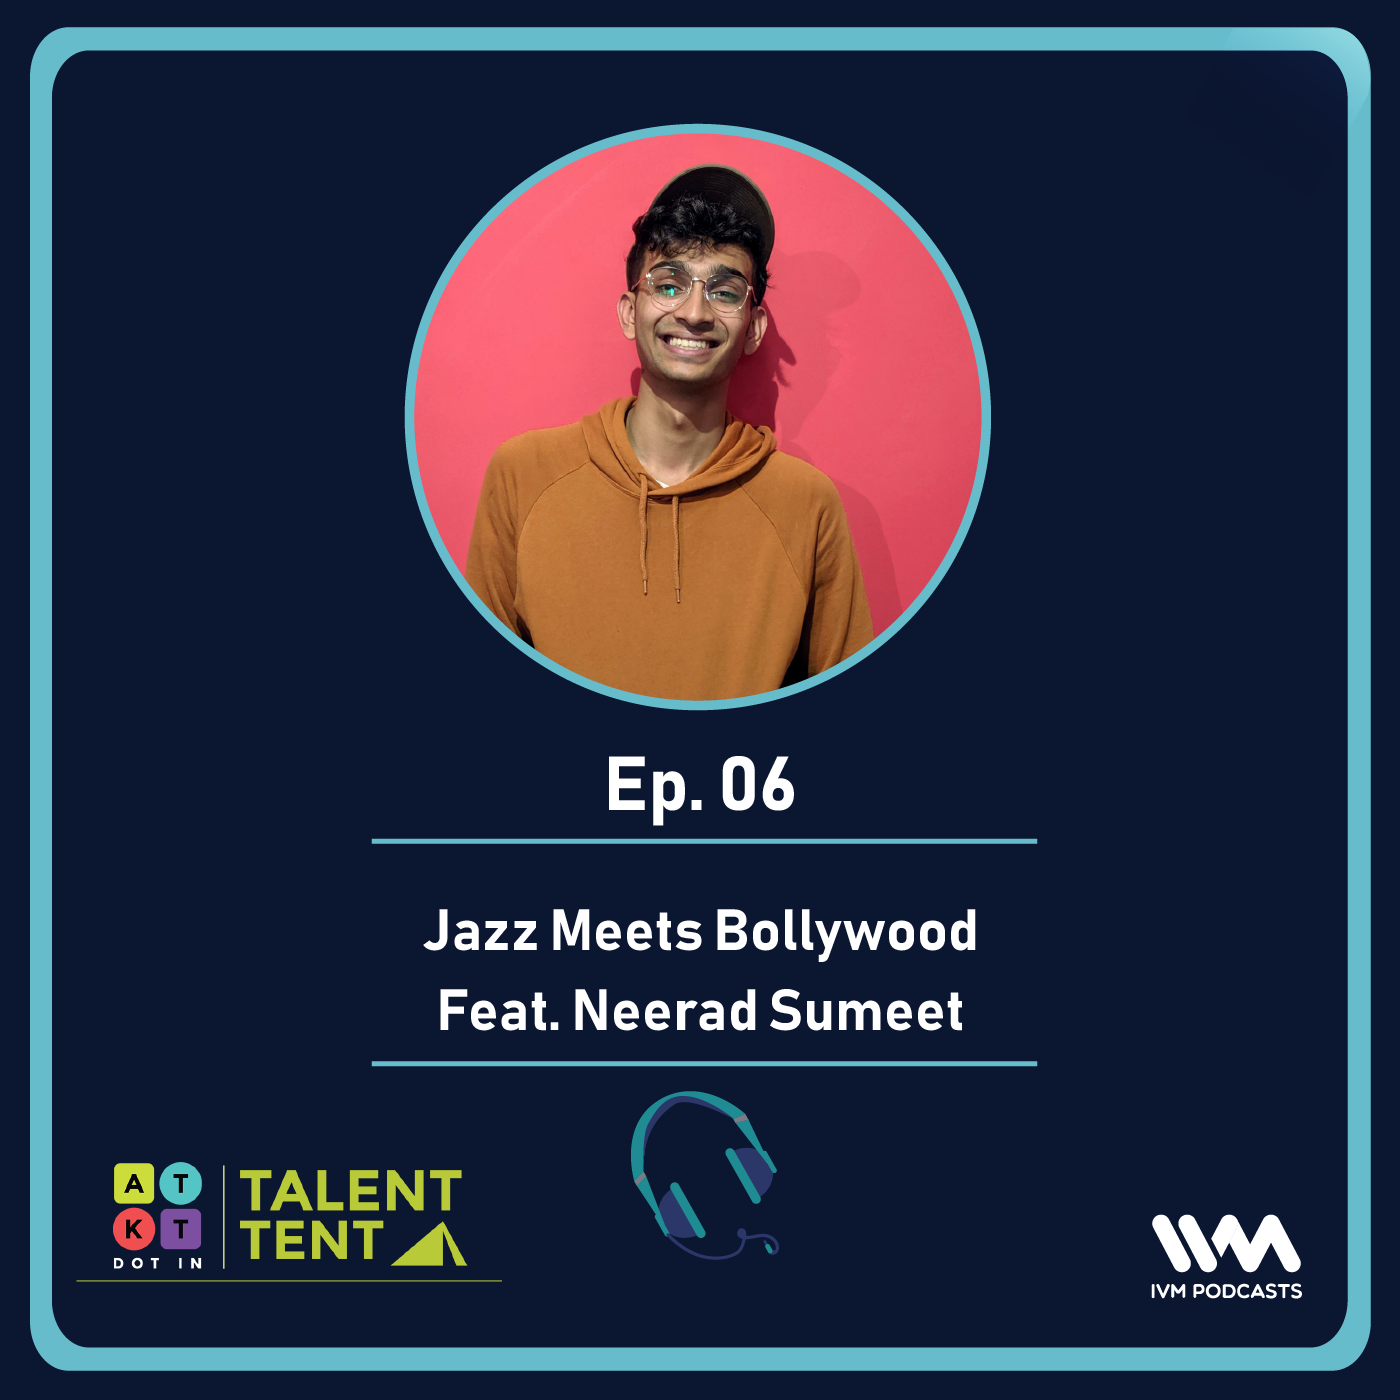 Ep. 06: Jazz Meets Bollywood Feat. Neerad Sumeet